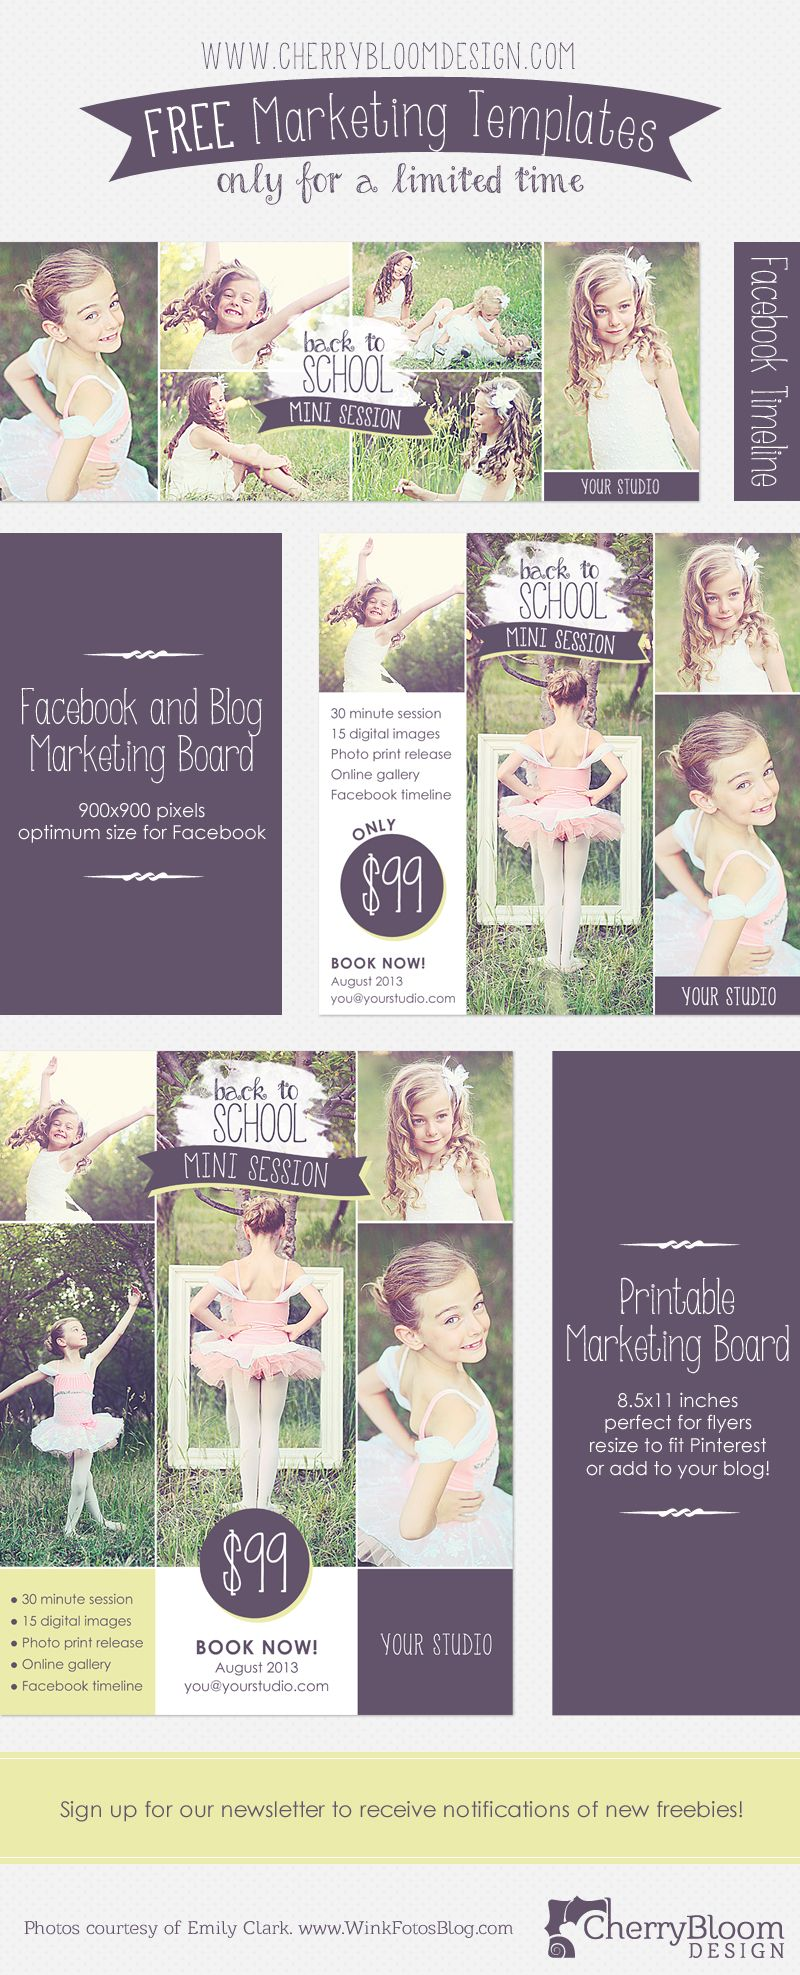 fabulous templates for photographers facebook timeline blog 3 fabulous templates for photographers facebook timeline blog board facebook image and printable flyer for a limited time only learn more here